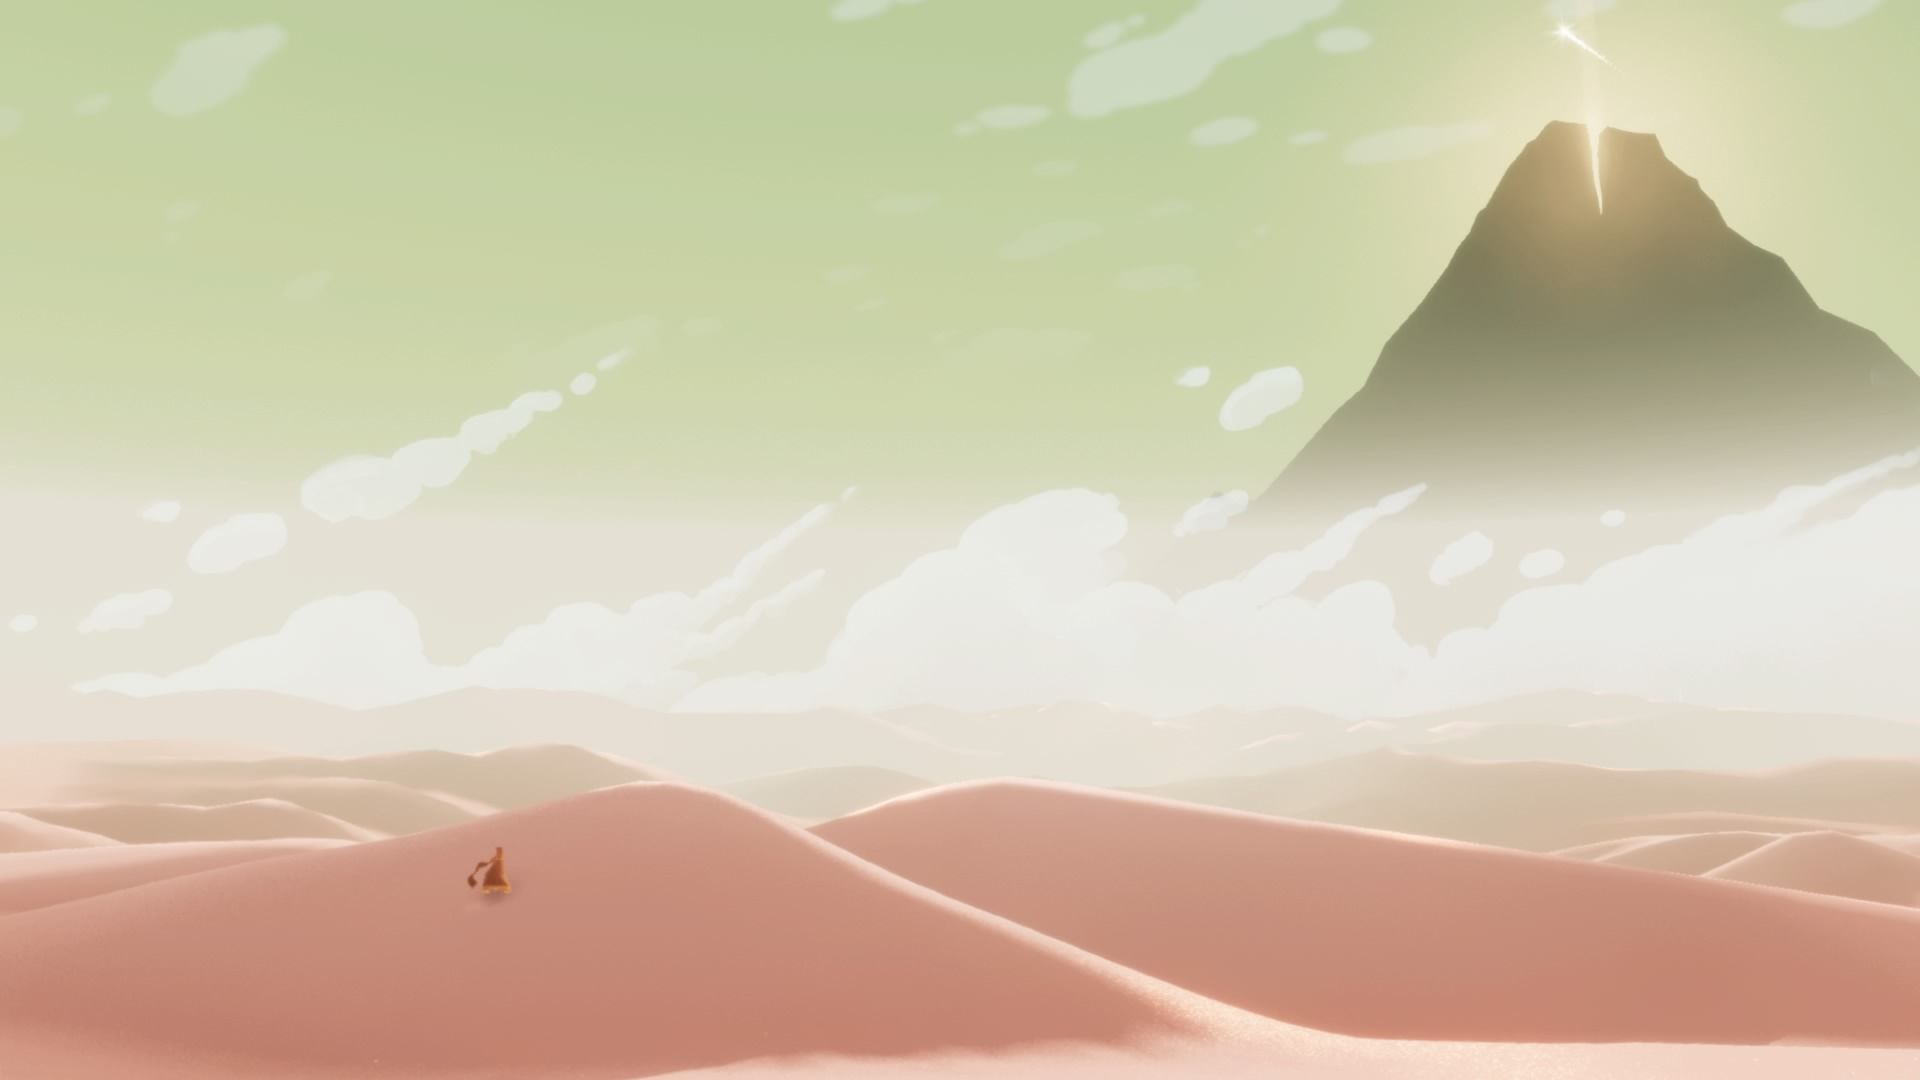 Journey is Still a Beautiful Game